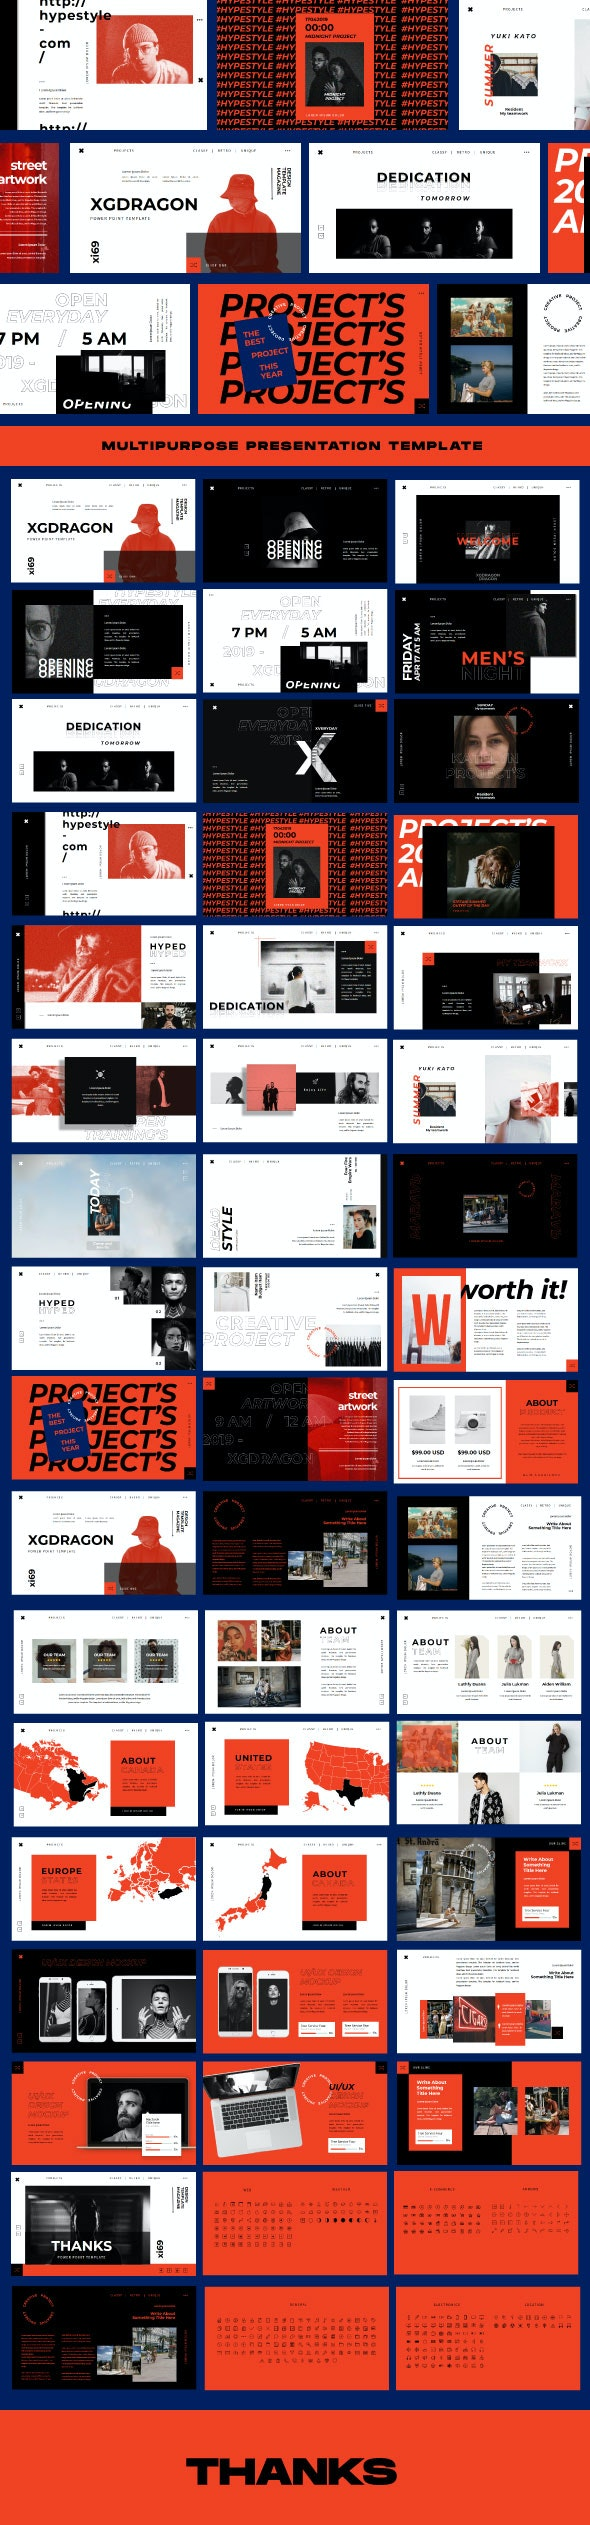 XGdragon Business Powerpoint Template - Business PowerPoint Templates